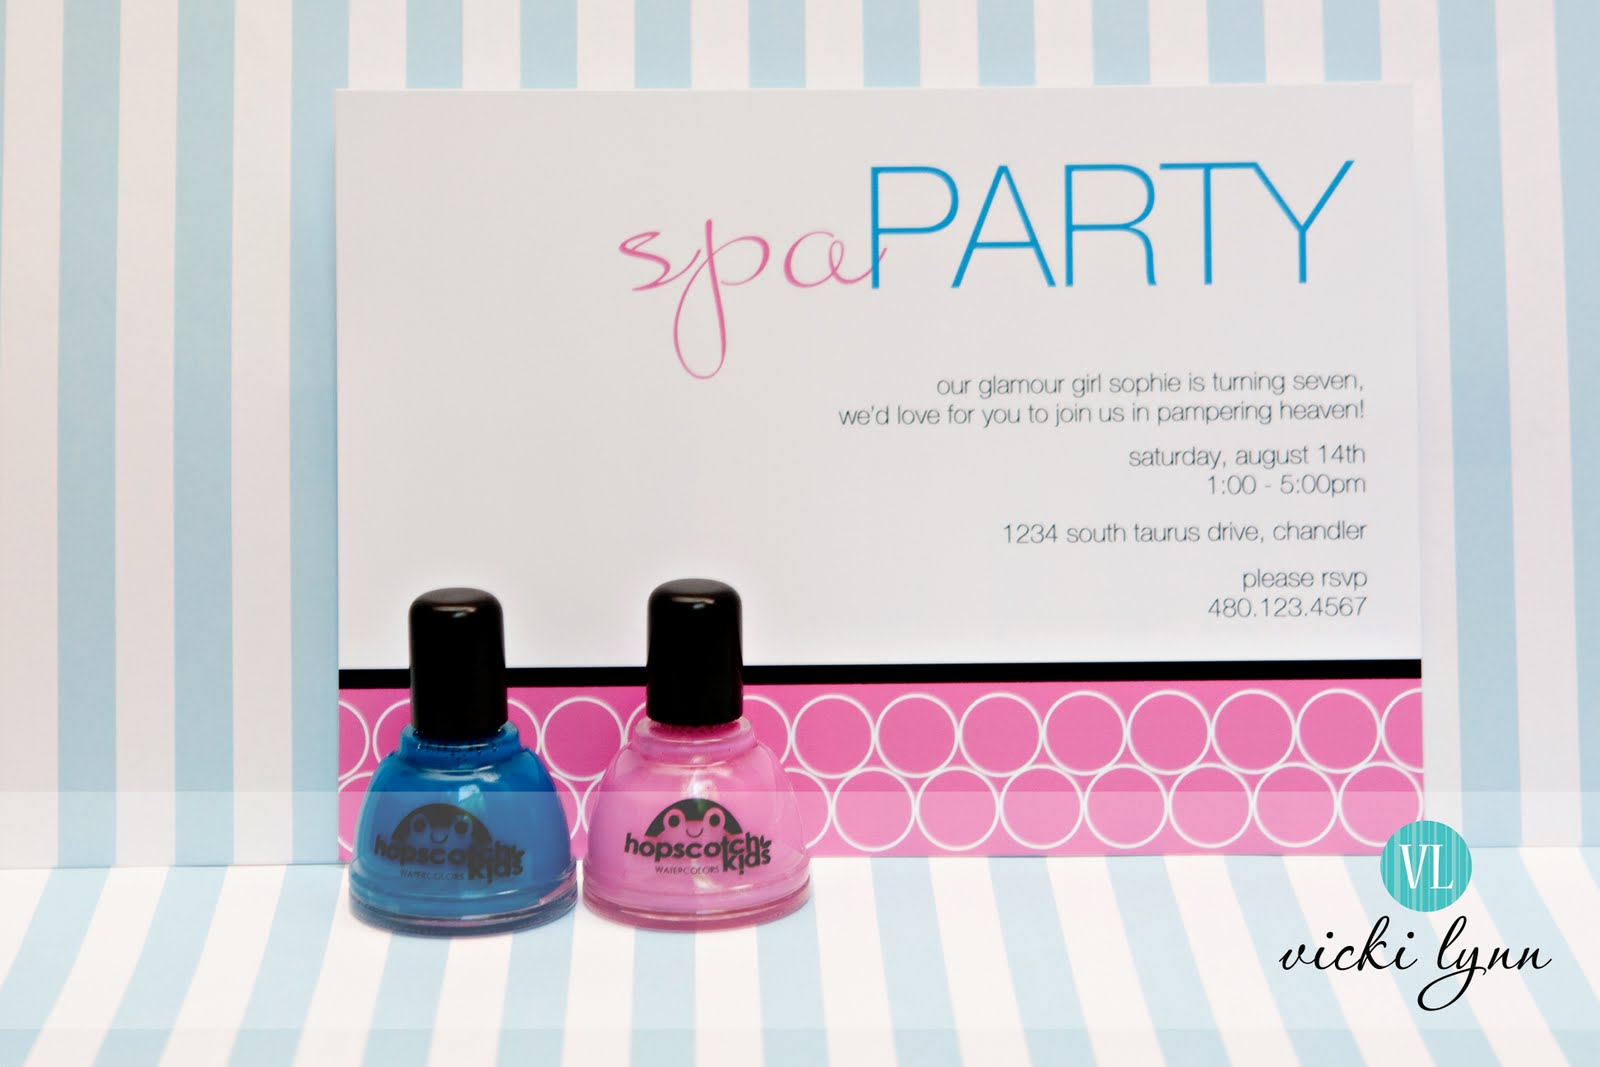 Birthday sale the tomkat studio blog -  Real Parties Sophie S Fabulous Spa Birthday Party